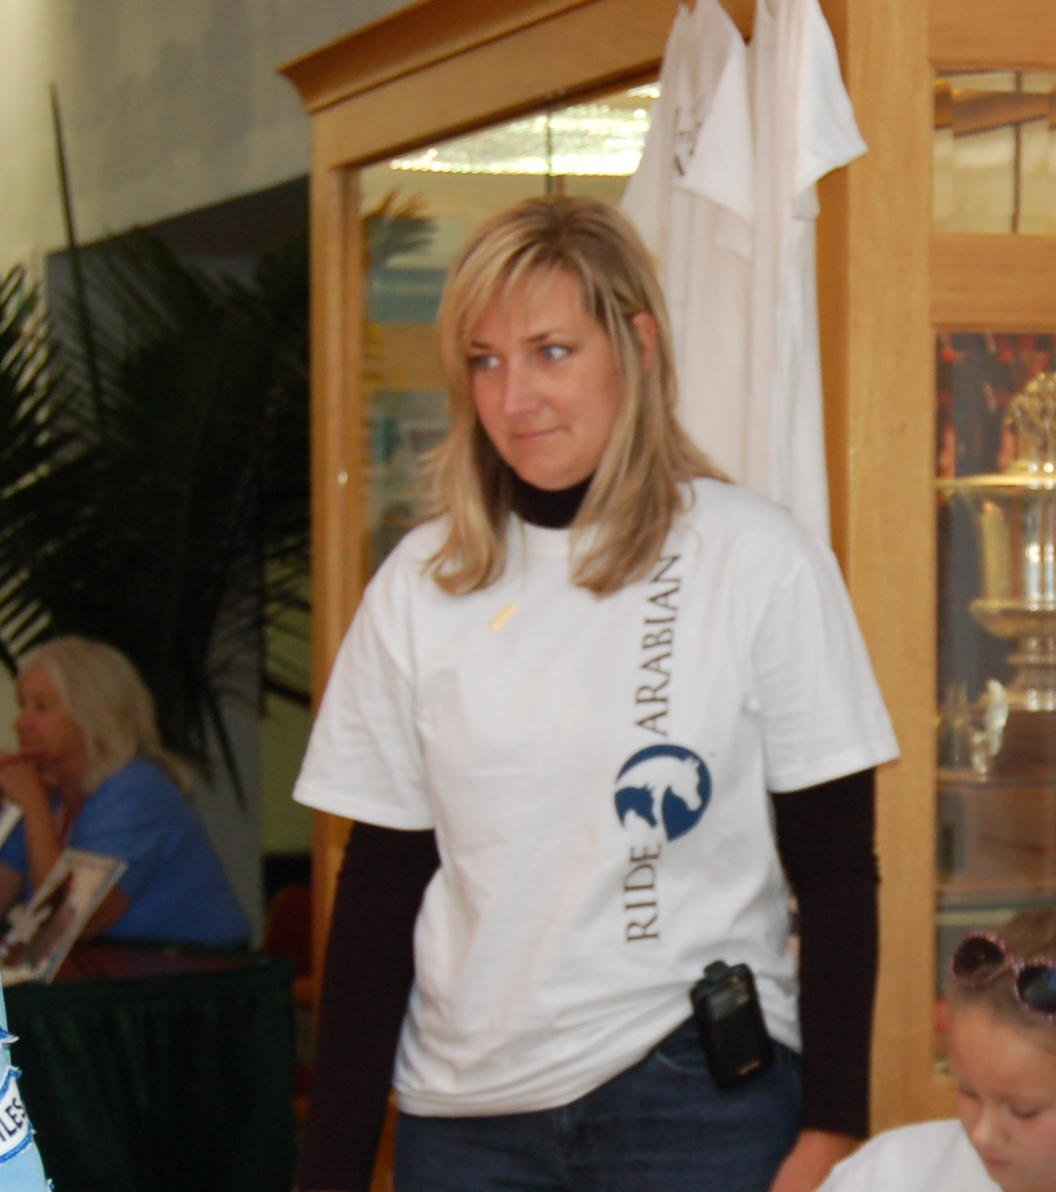 Heather volunteering at WEG